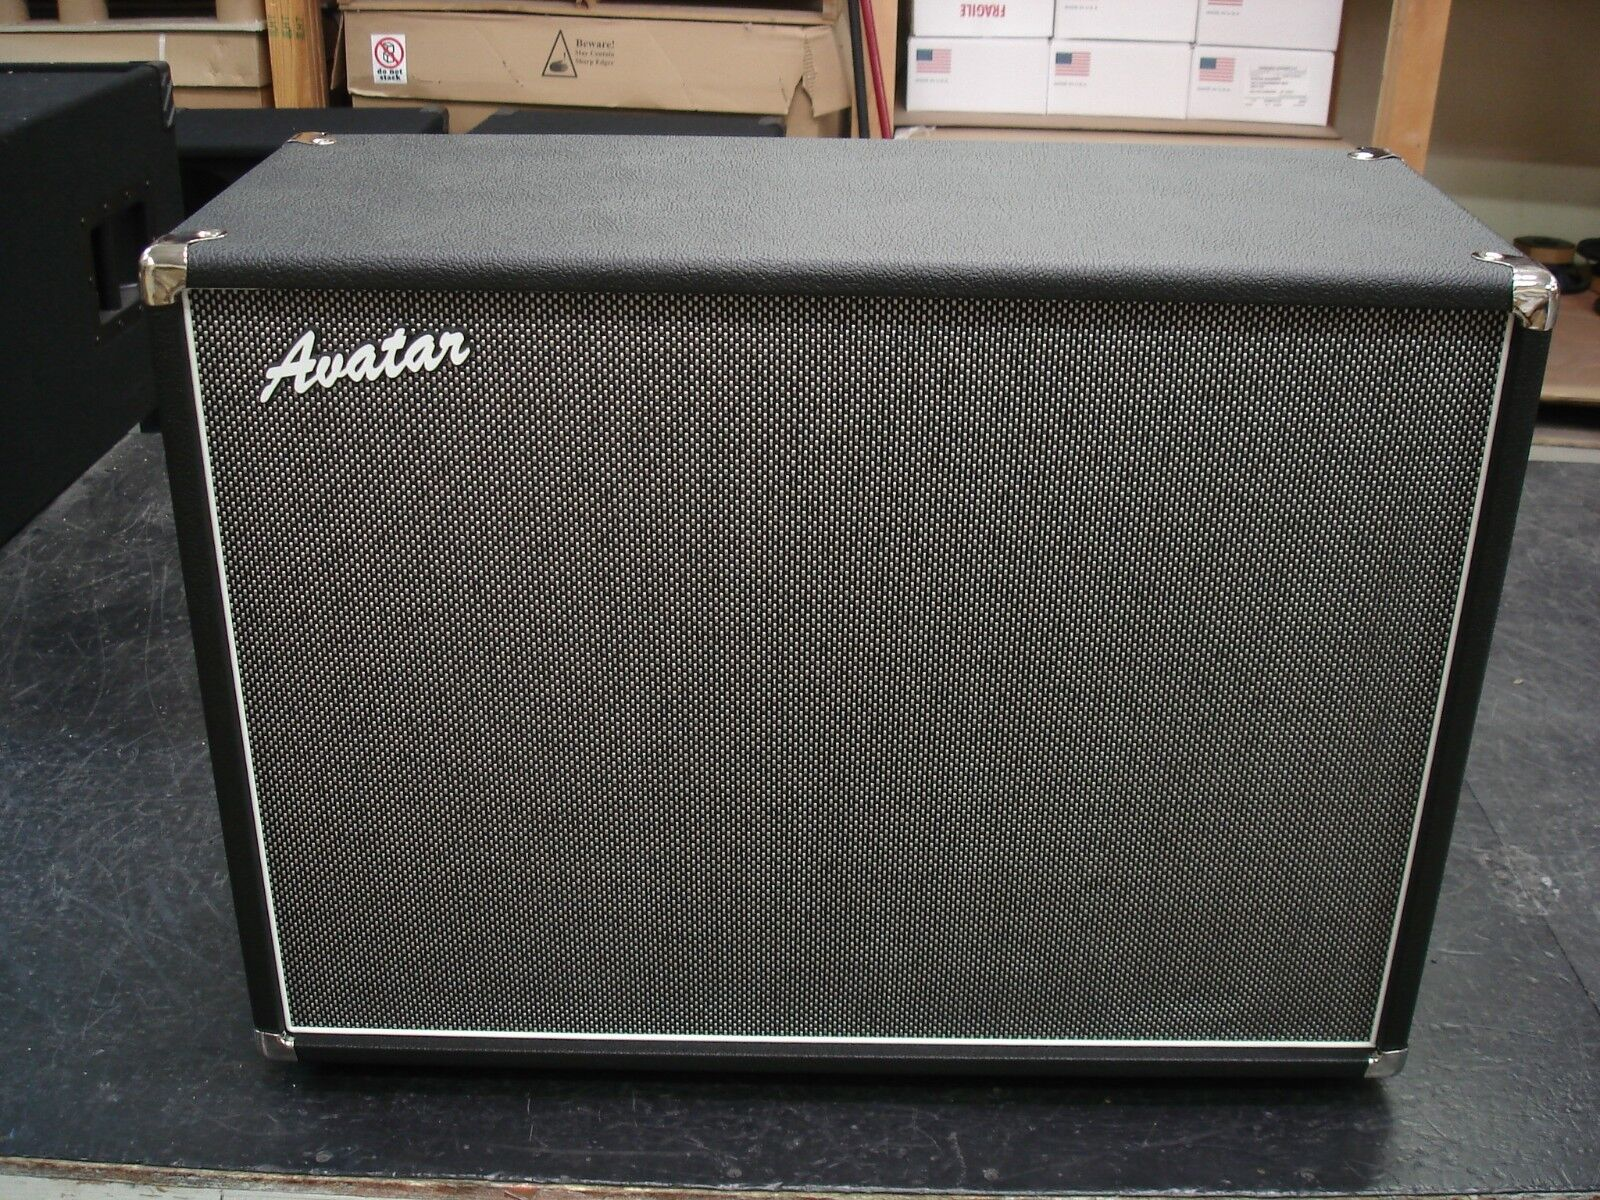 The cabinet is wrapped in black tolex covering with the Black and Silver  weave grill cloth with white piping